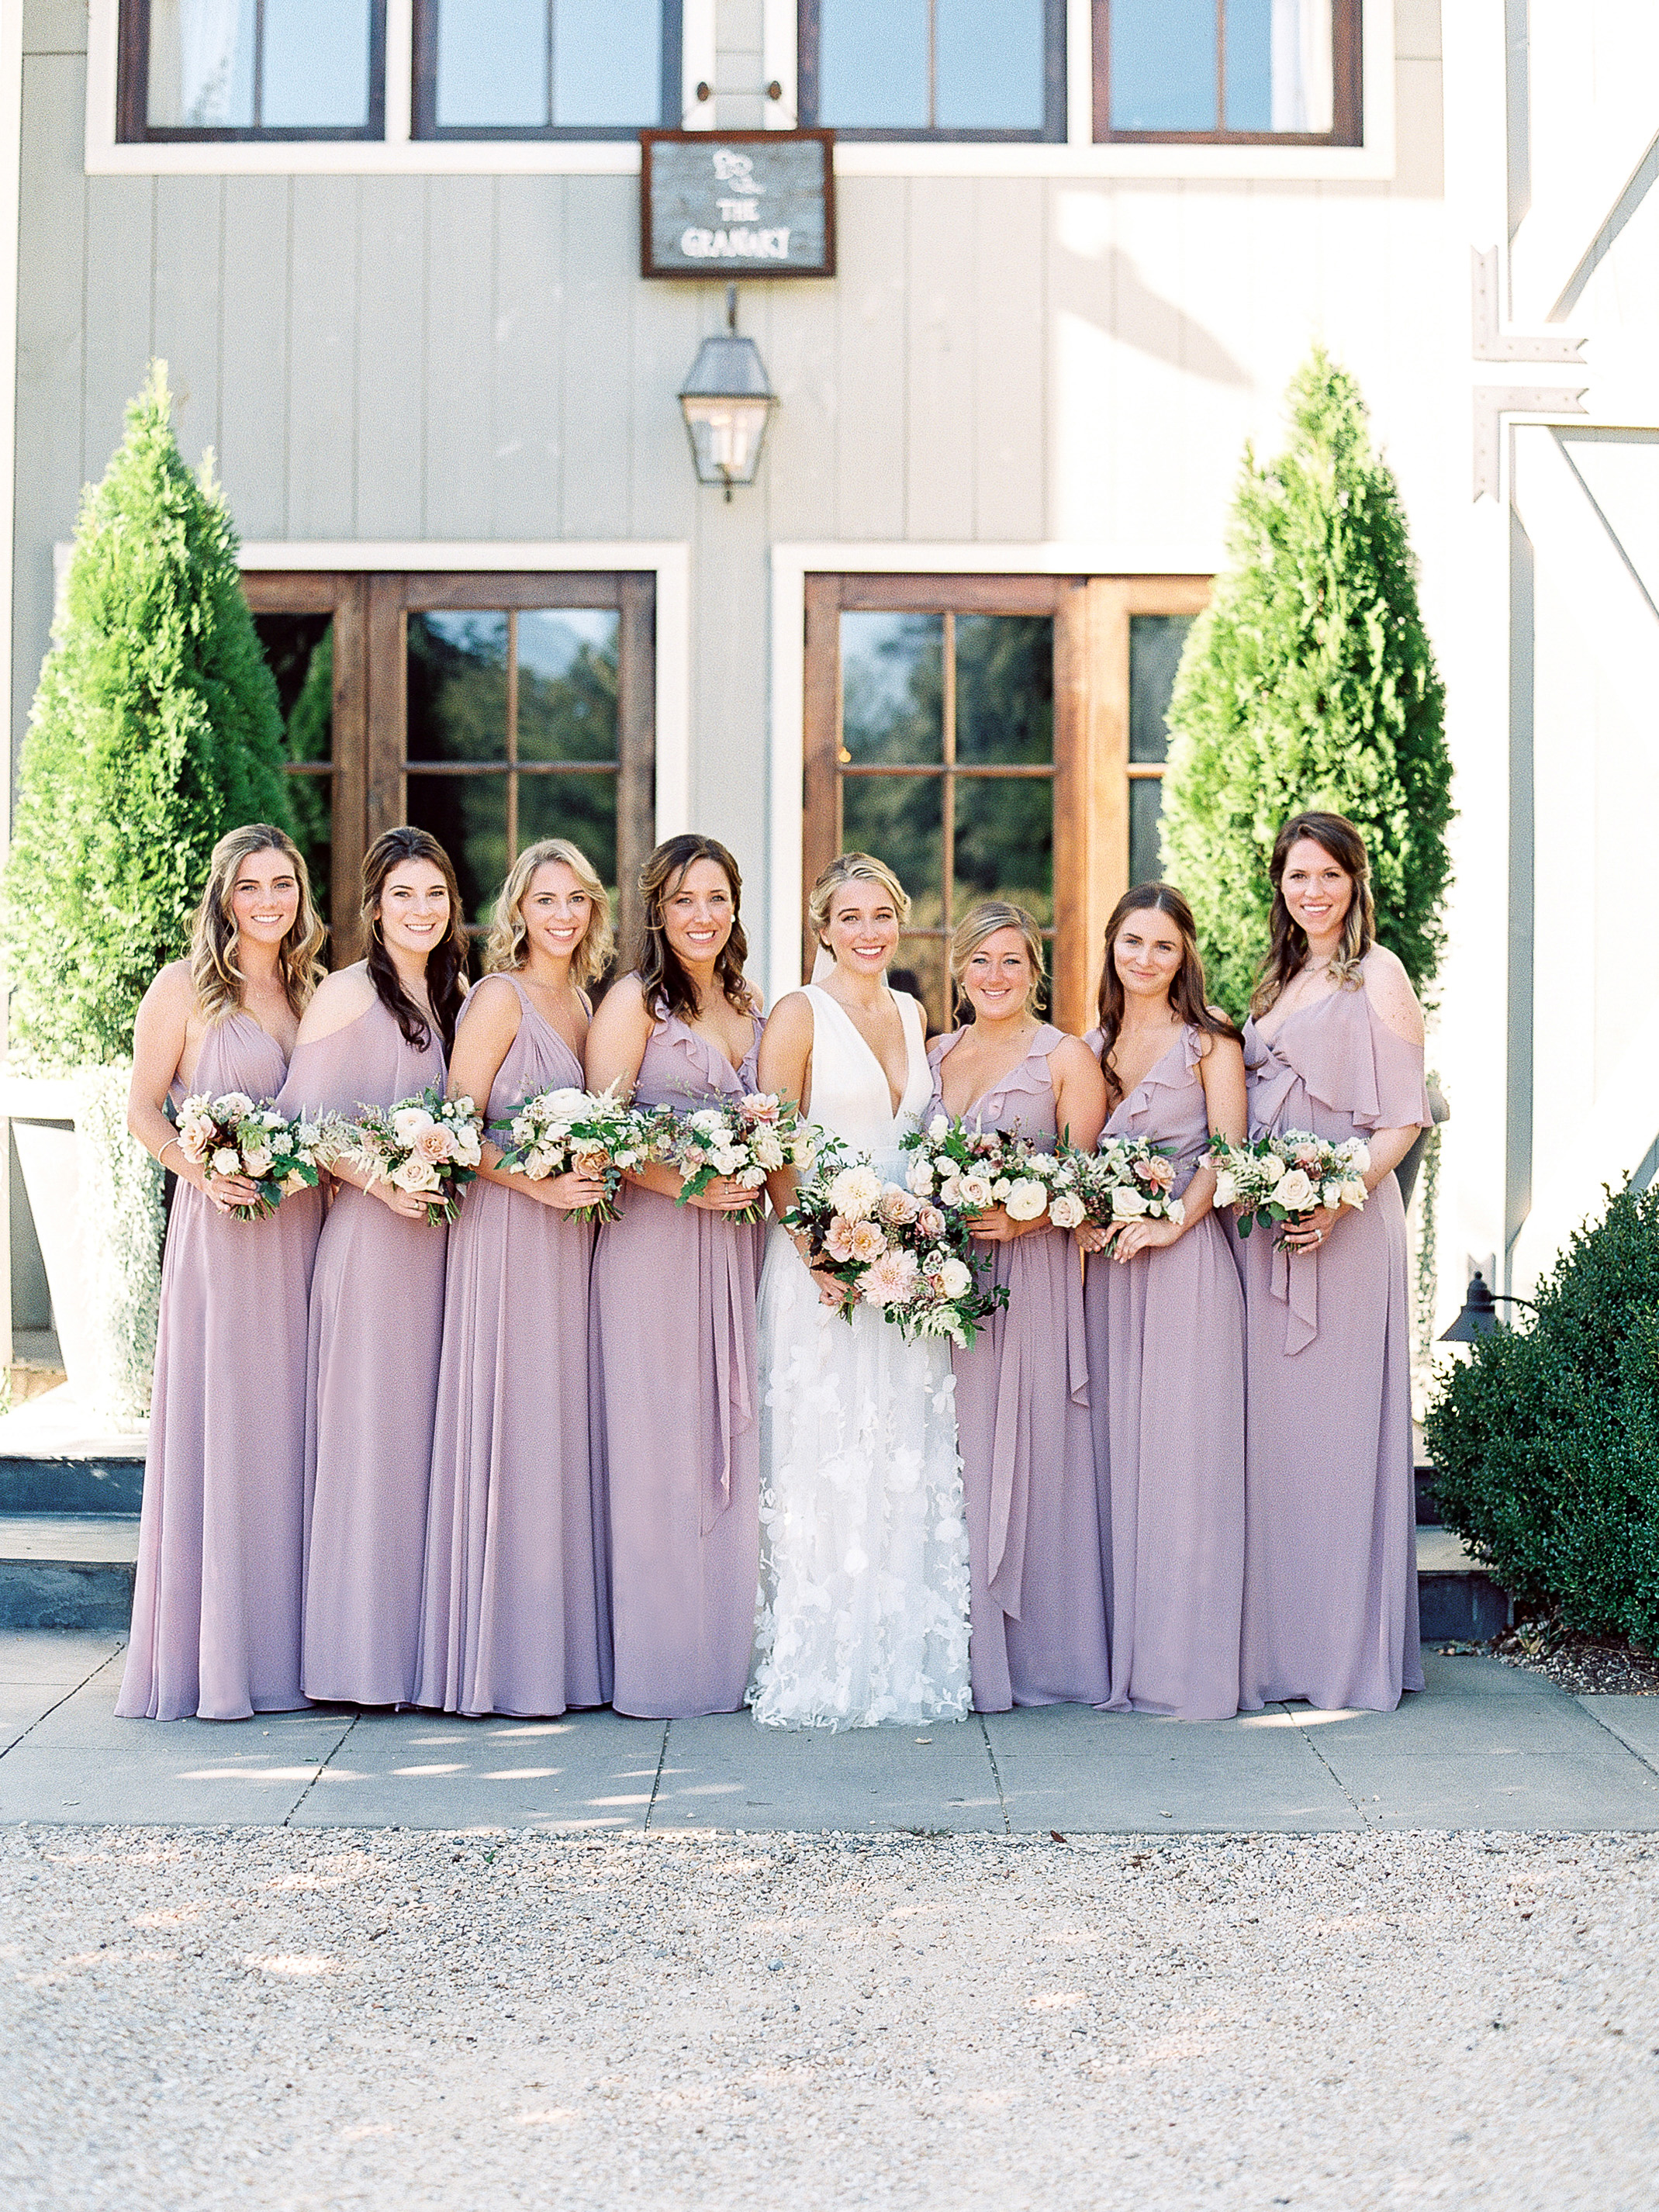 The Best Bridesmaids' Dresses of 2018 | Martha Stewart Weddings